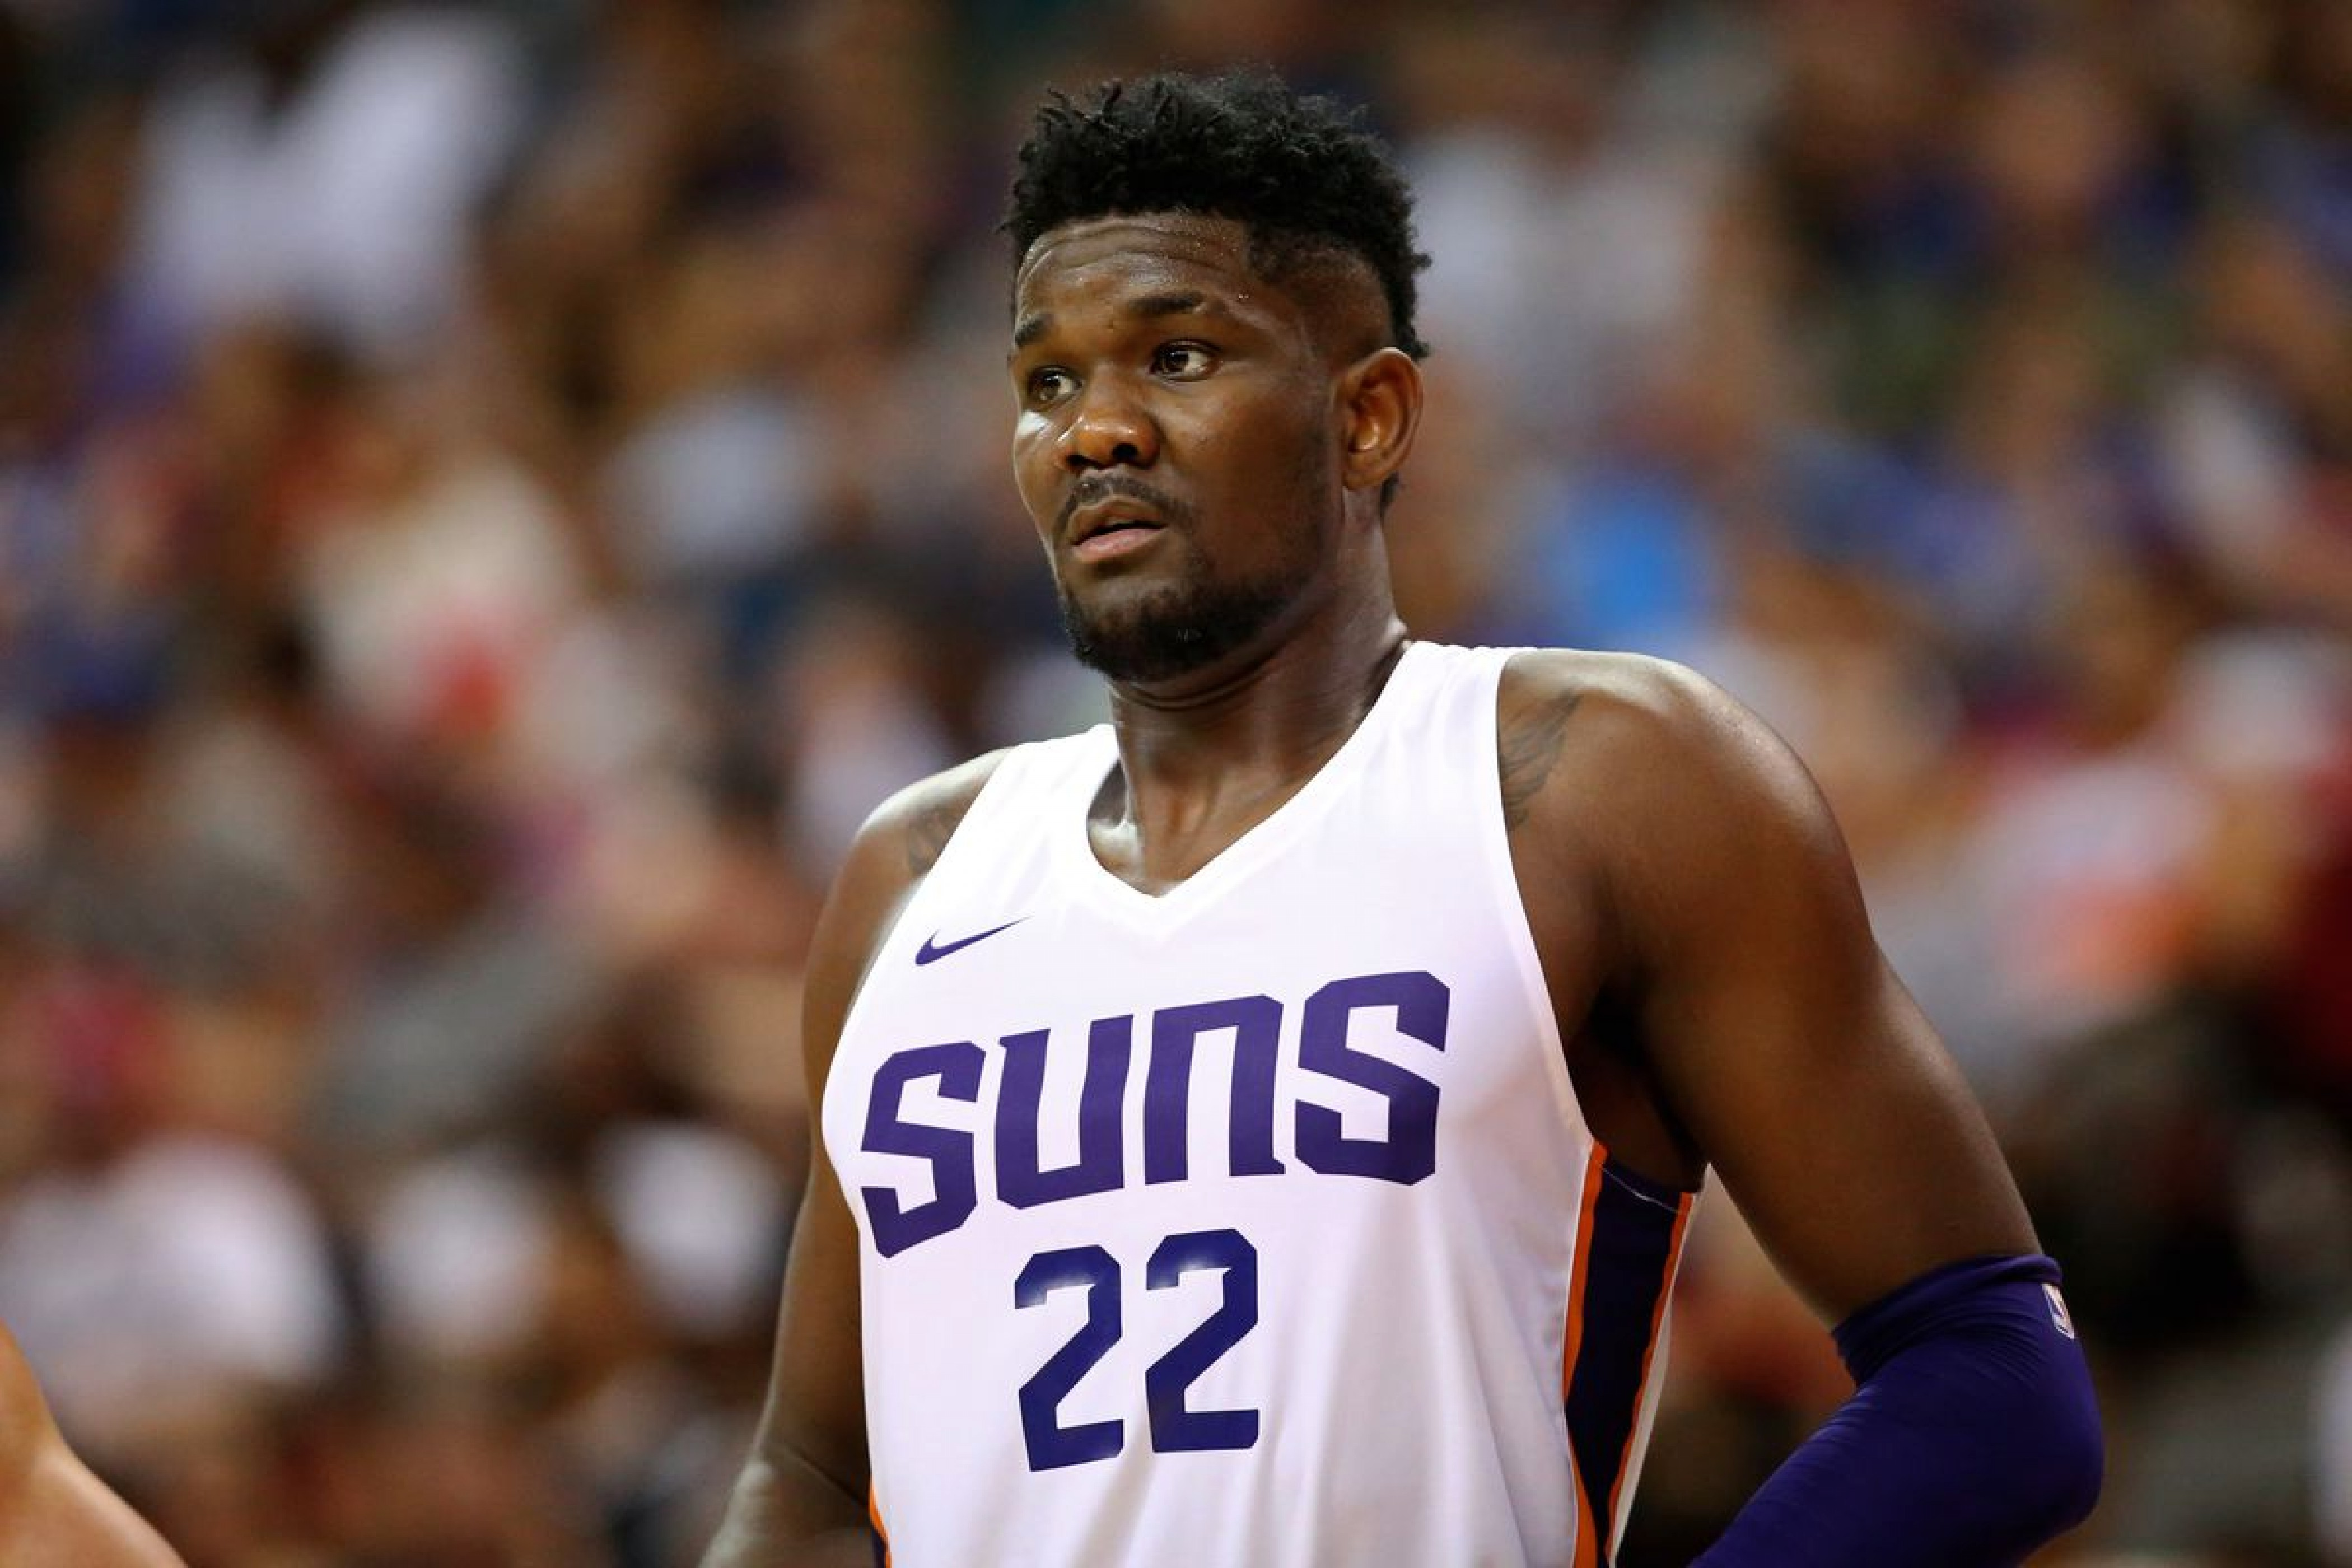 Deandre Ayton sets big expectations for his rookie year